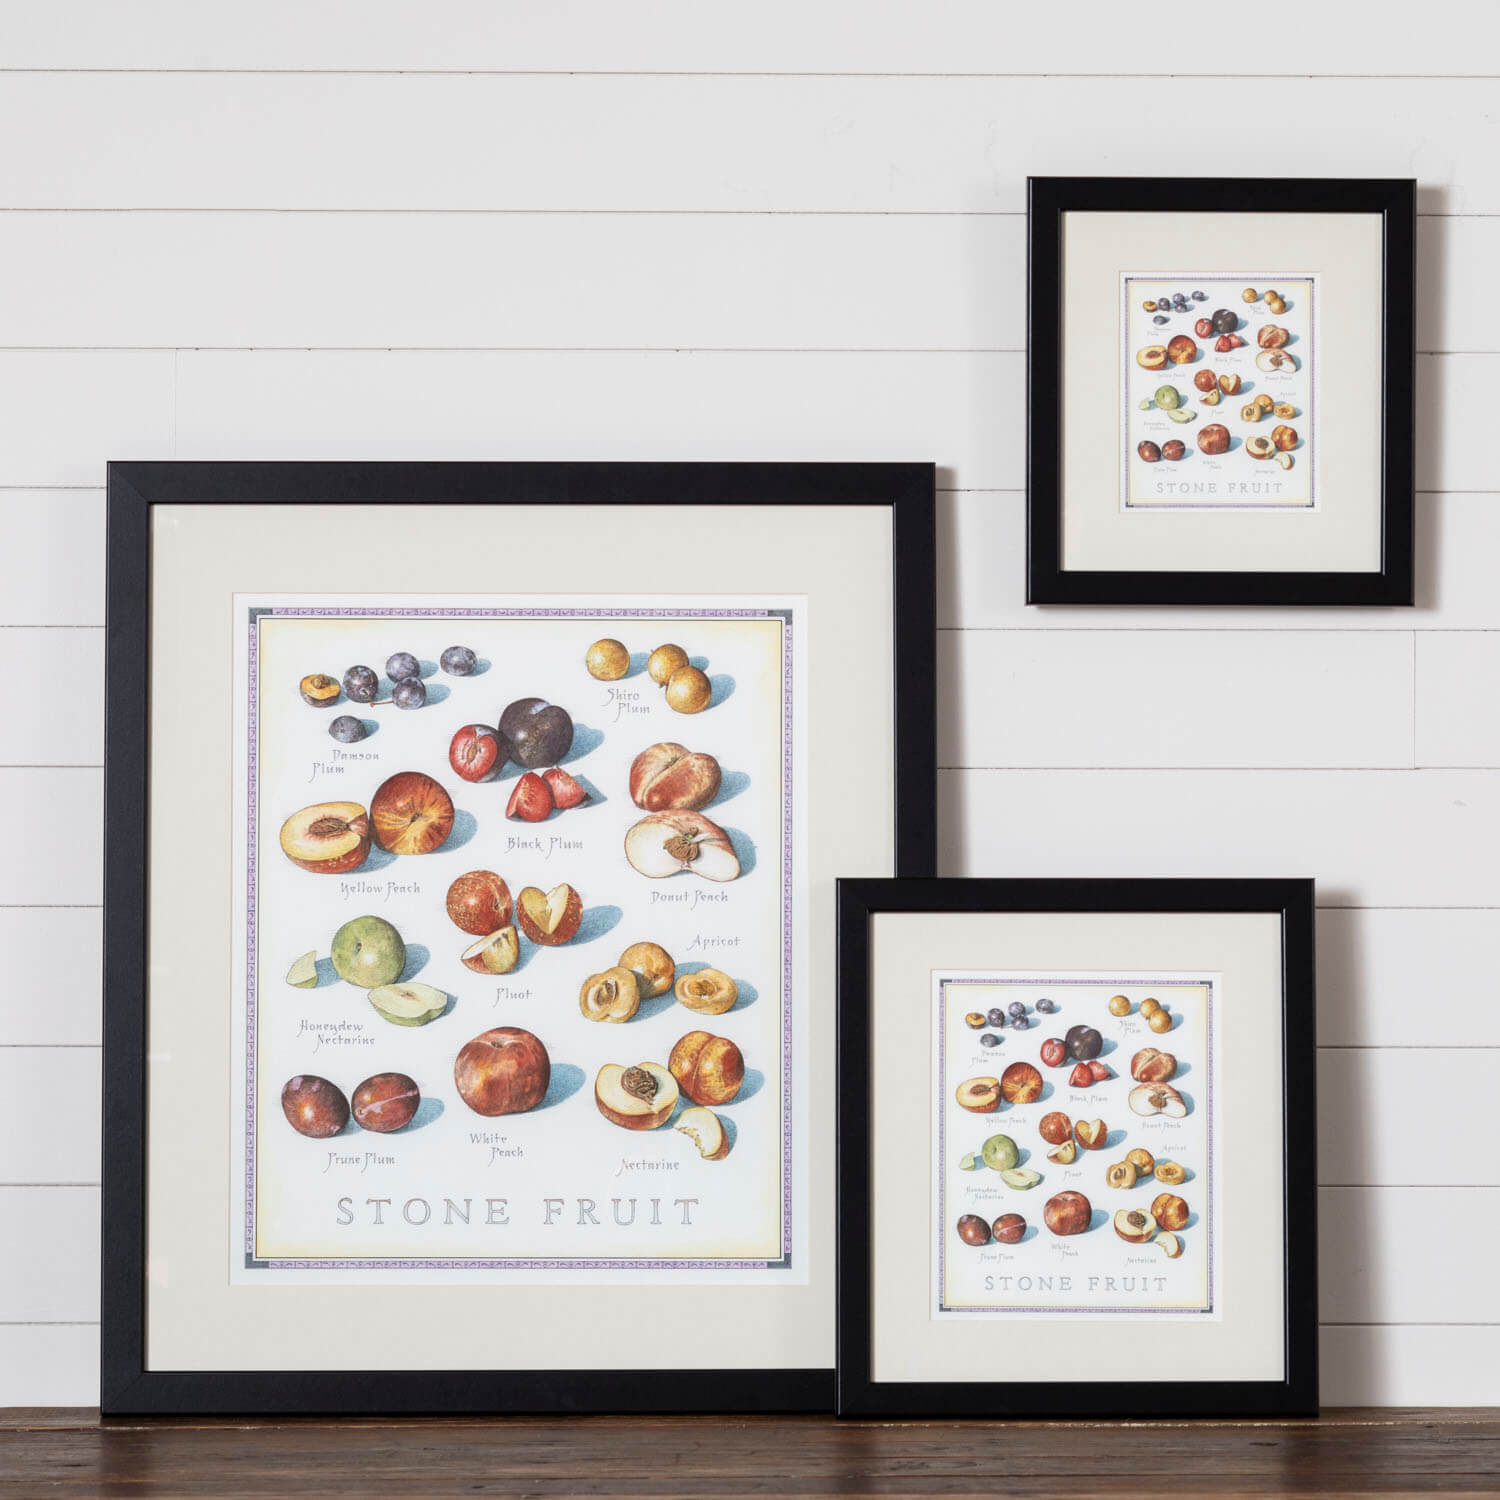 Cook's Illustrated Framed Print: Stone Fruit